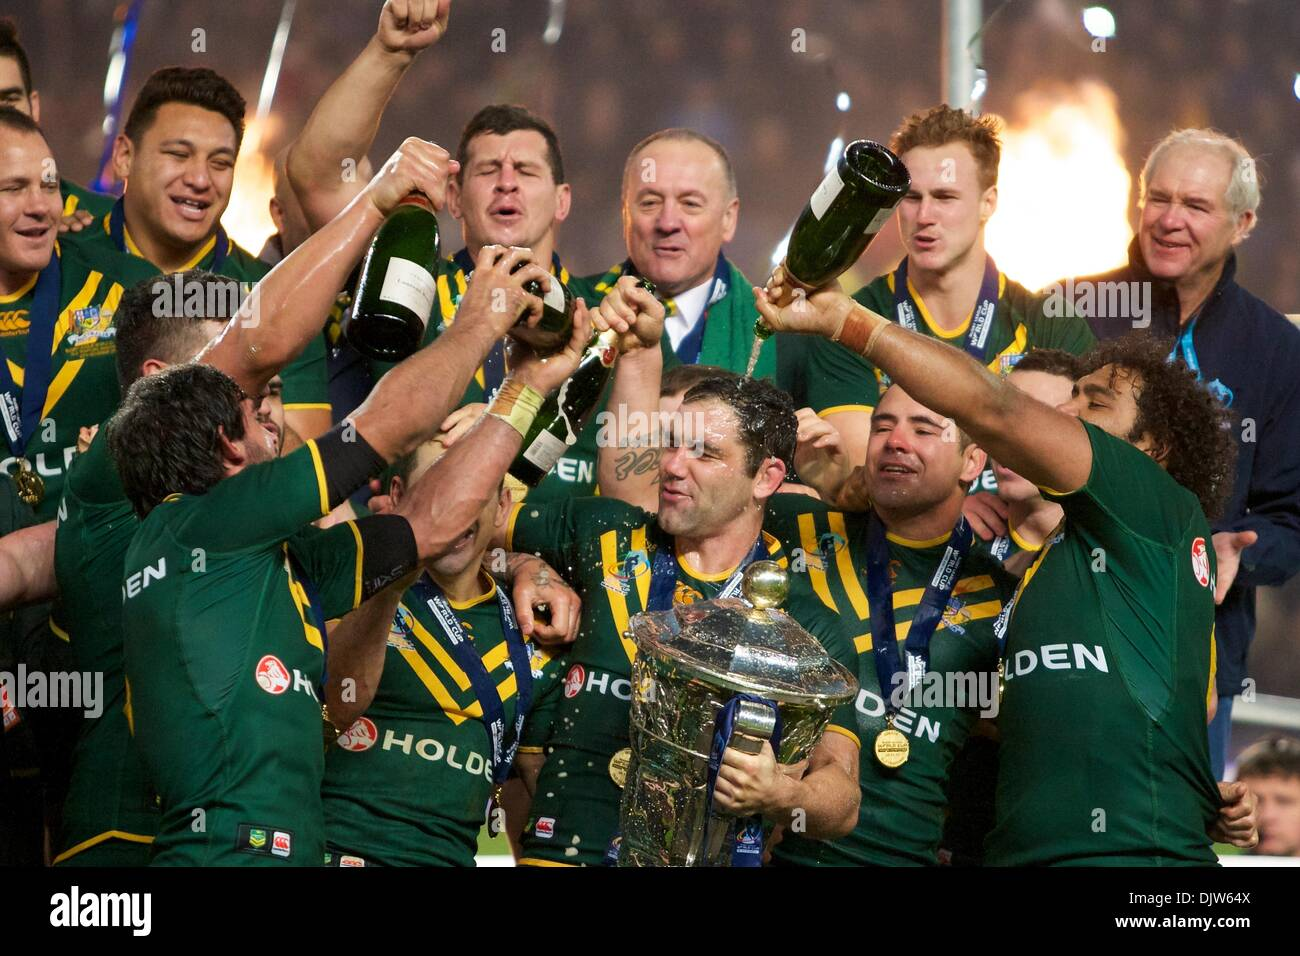 Manchester, UK. 30th Nov, 2013. Australis celebrate winning the Rugby League World Cup Final between Australia and Stock Photo